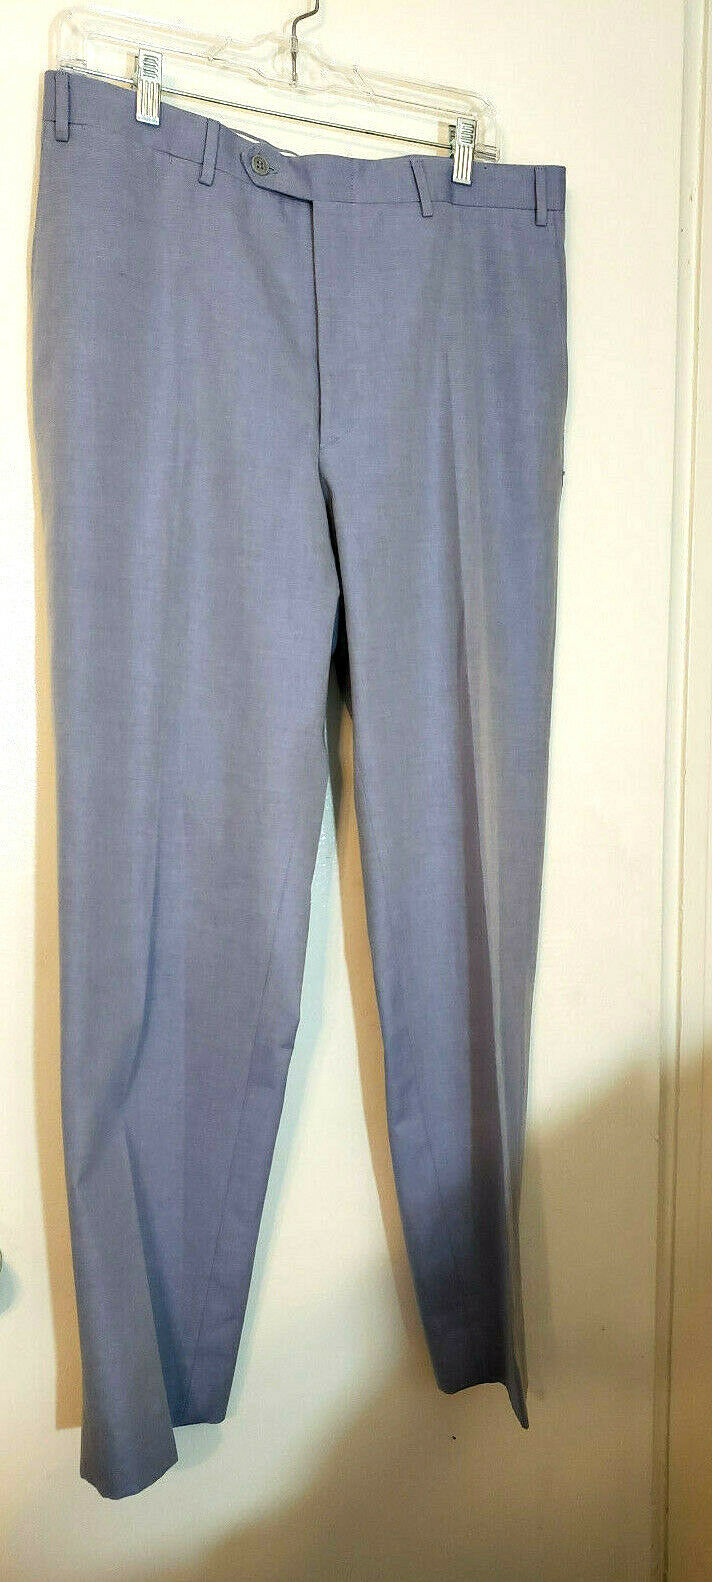 Canali Mens casual Pants 35x33 light bluee flat front solid  100% Cotton   NWOT